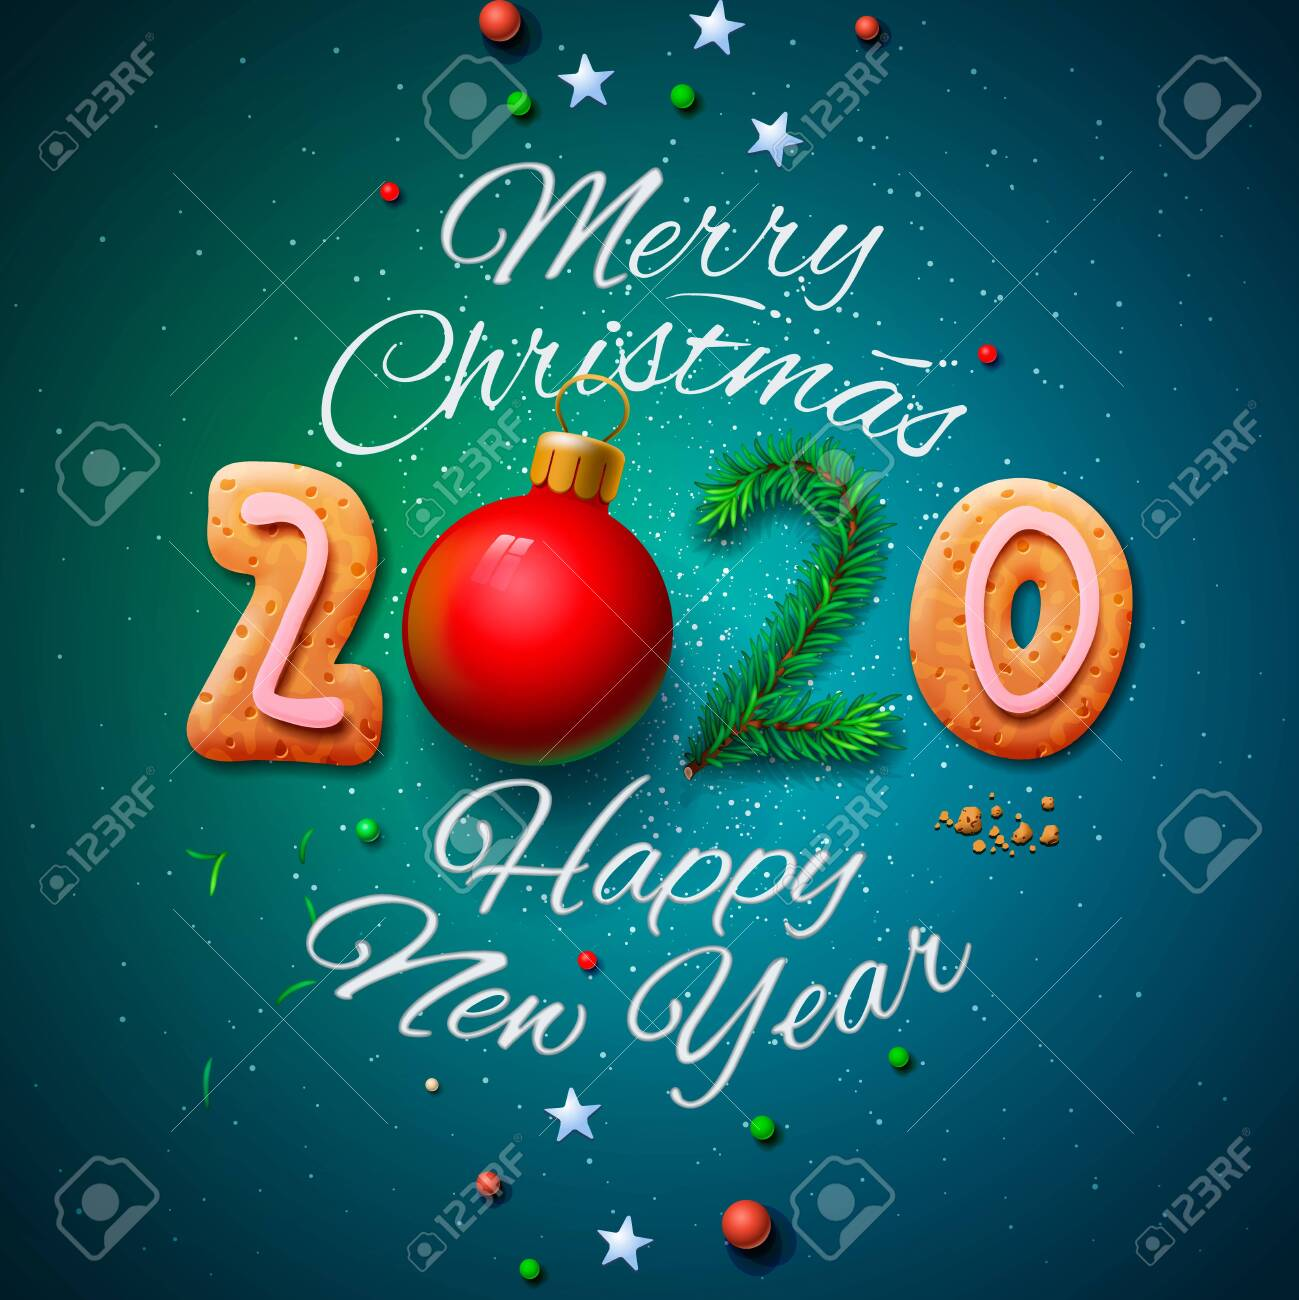 Free Images Merry Christmas 2020 Merry Christmas And Happy New Year 2020 Greeting Card, Vector